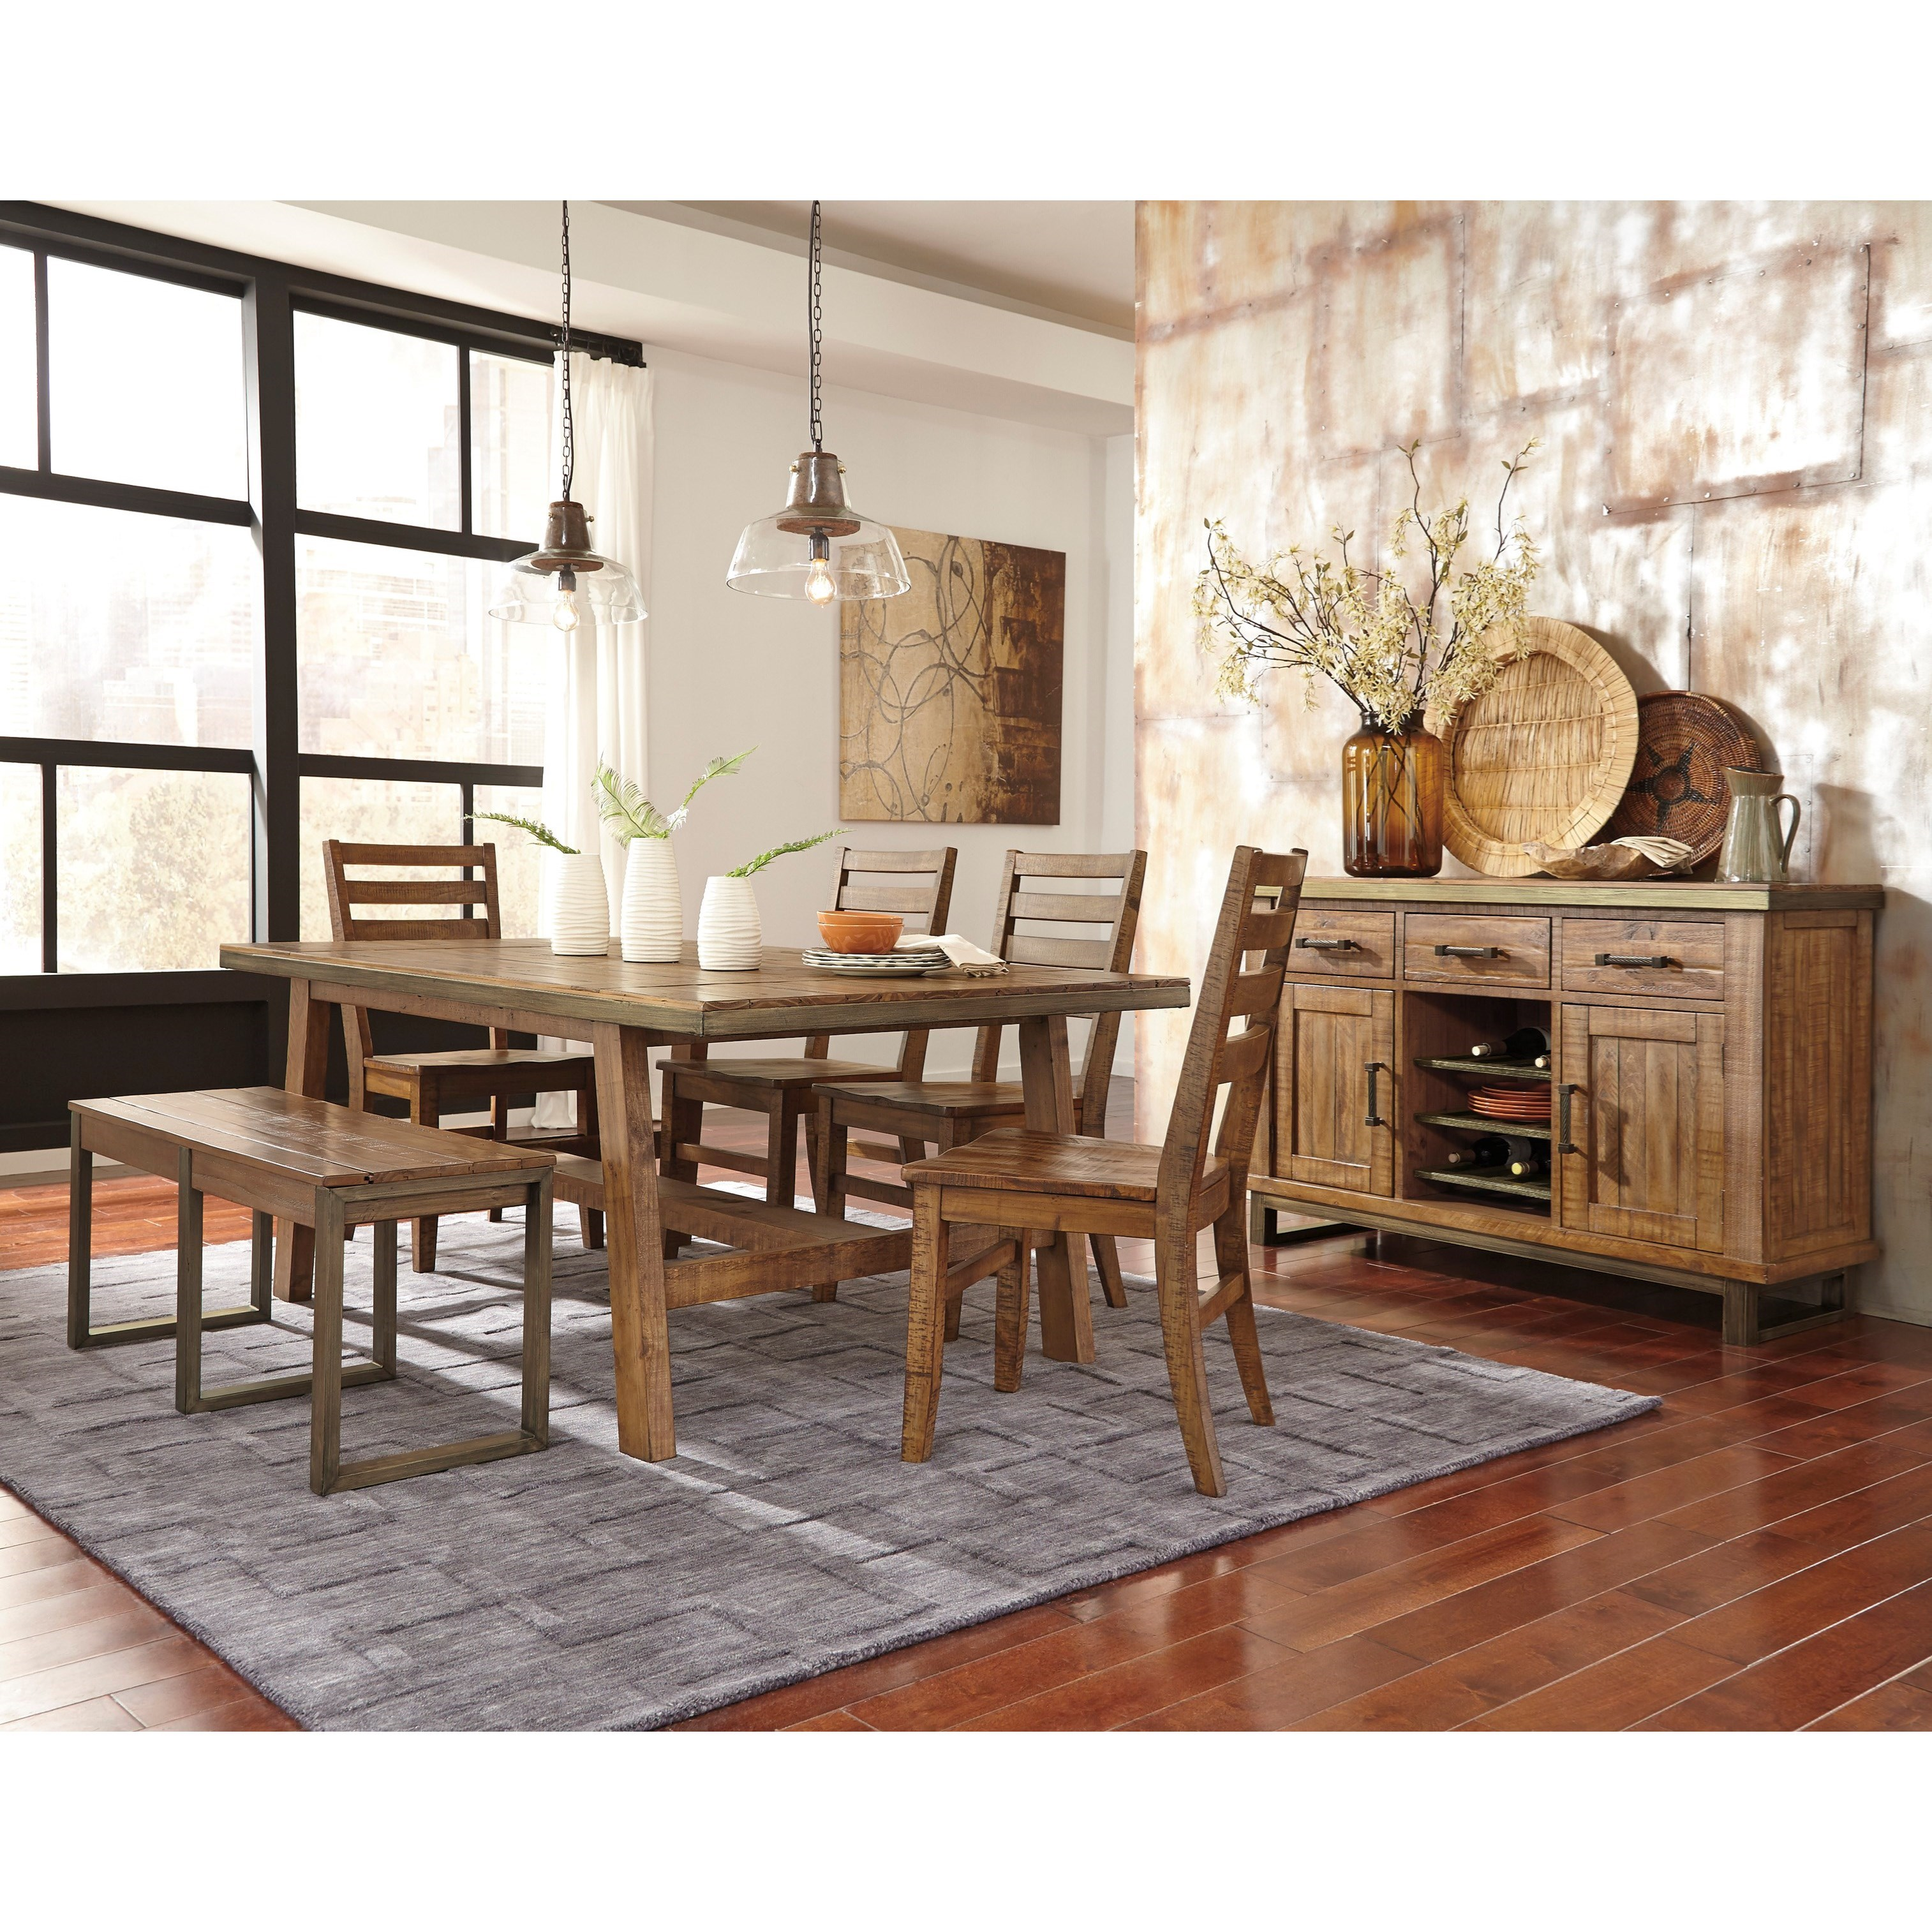 Signature Design by Ashley Dondie Casual Dining Room Group - Item Number: D663 Dining Room Group 2